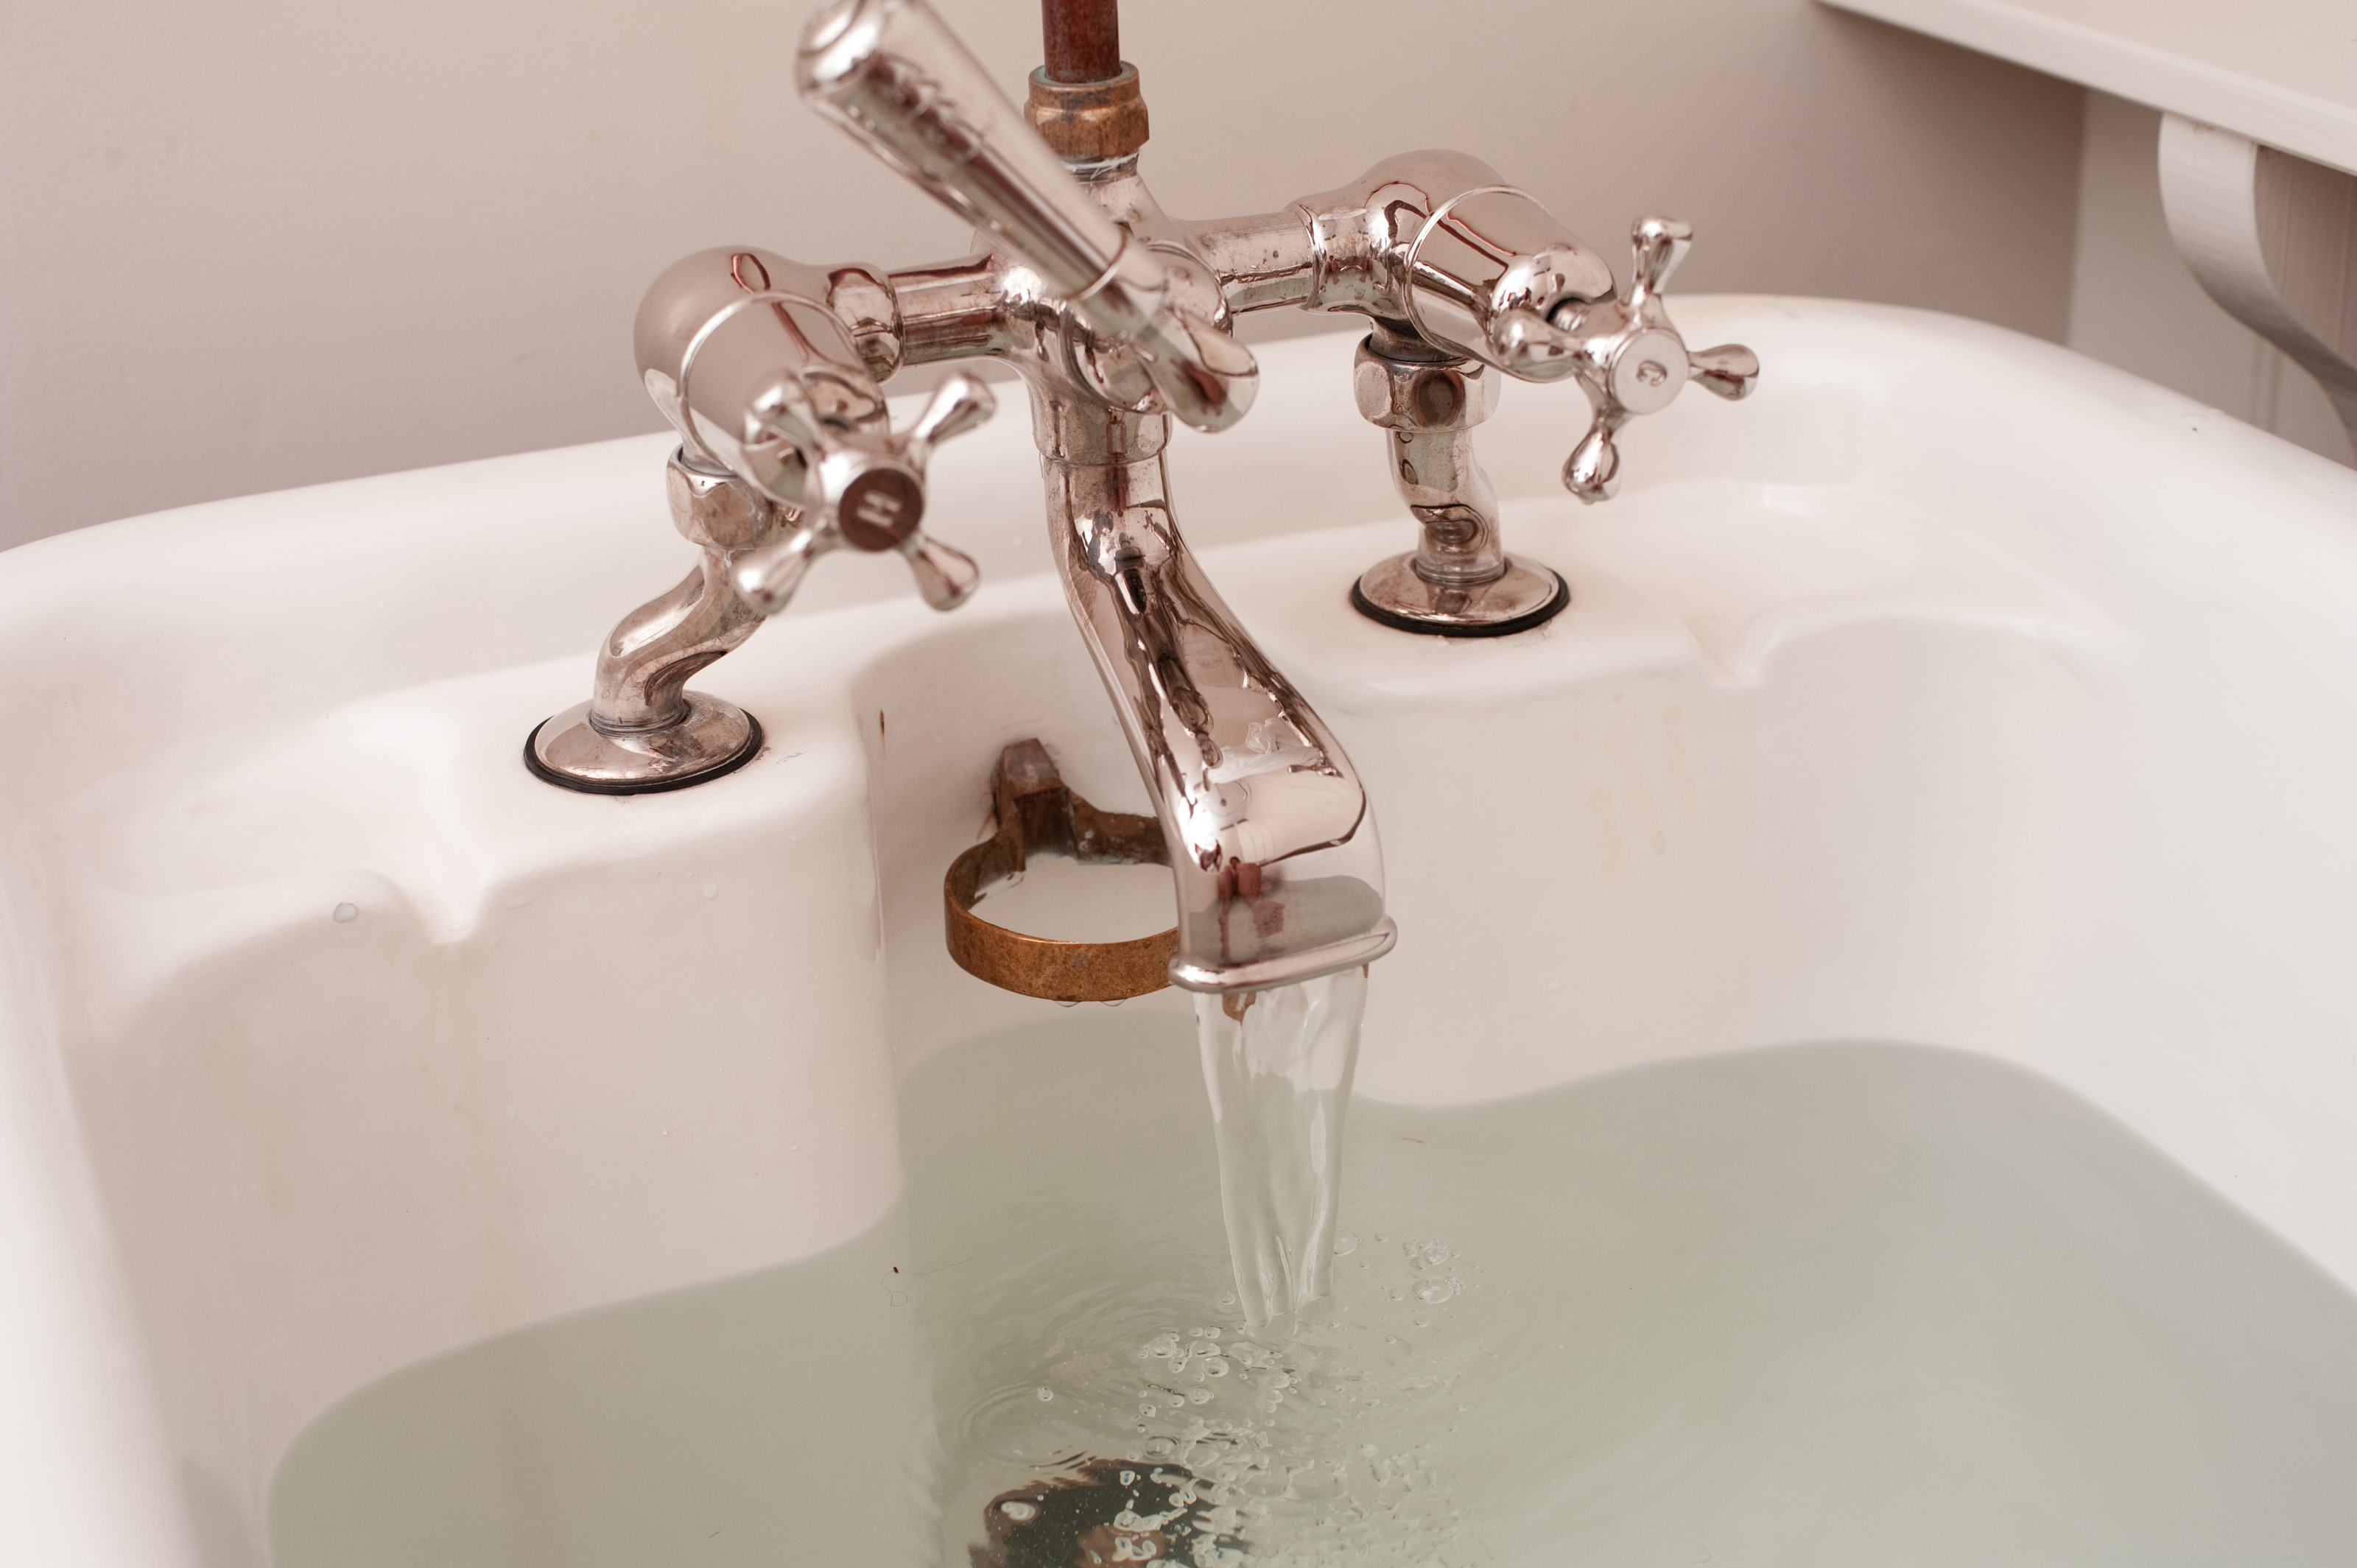 Old Fashioned Faucet